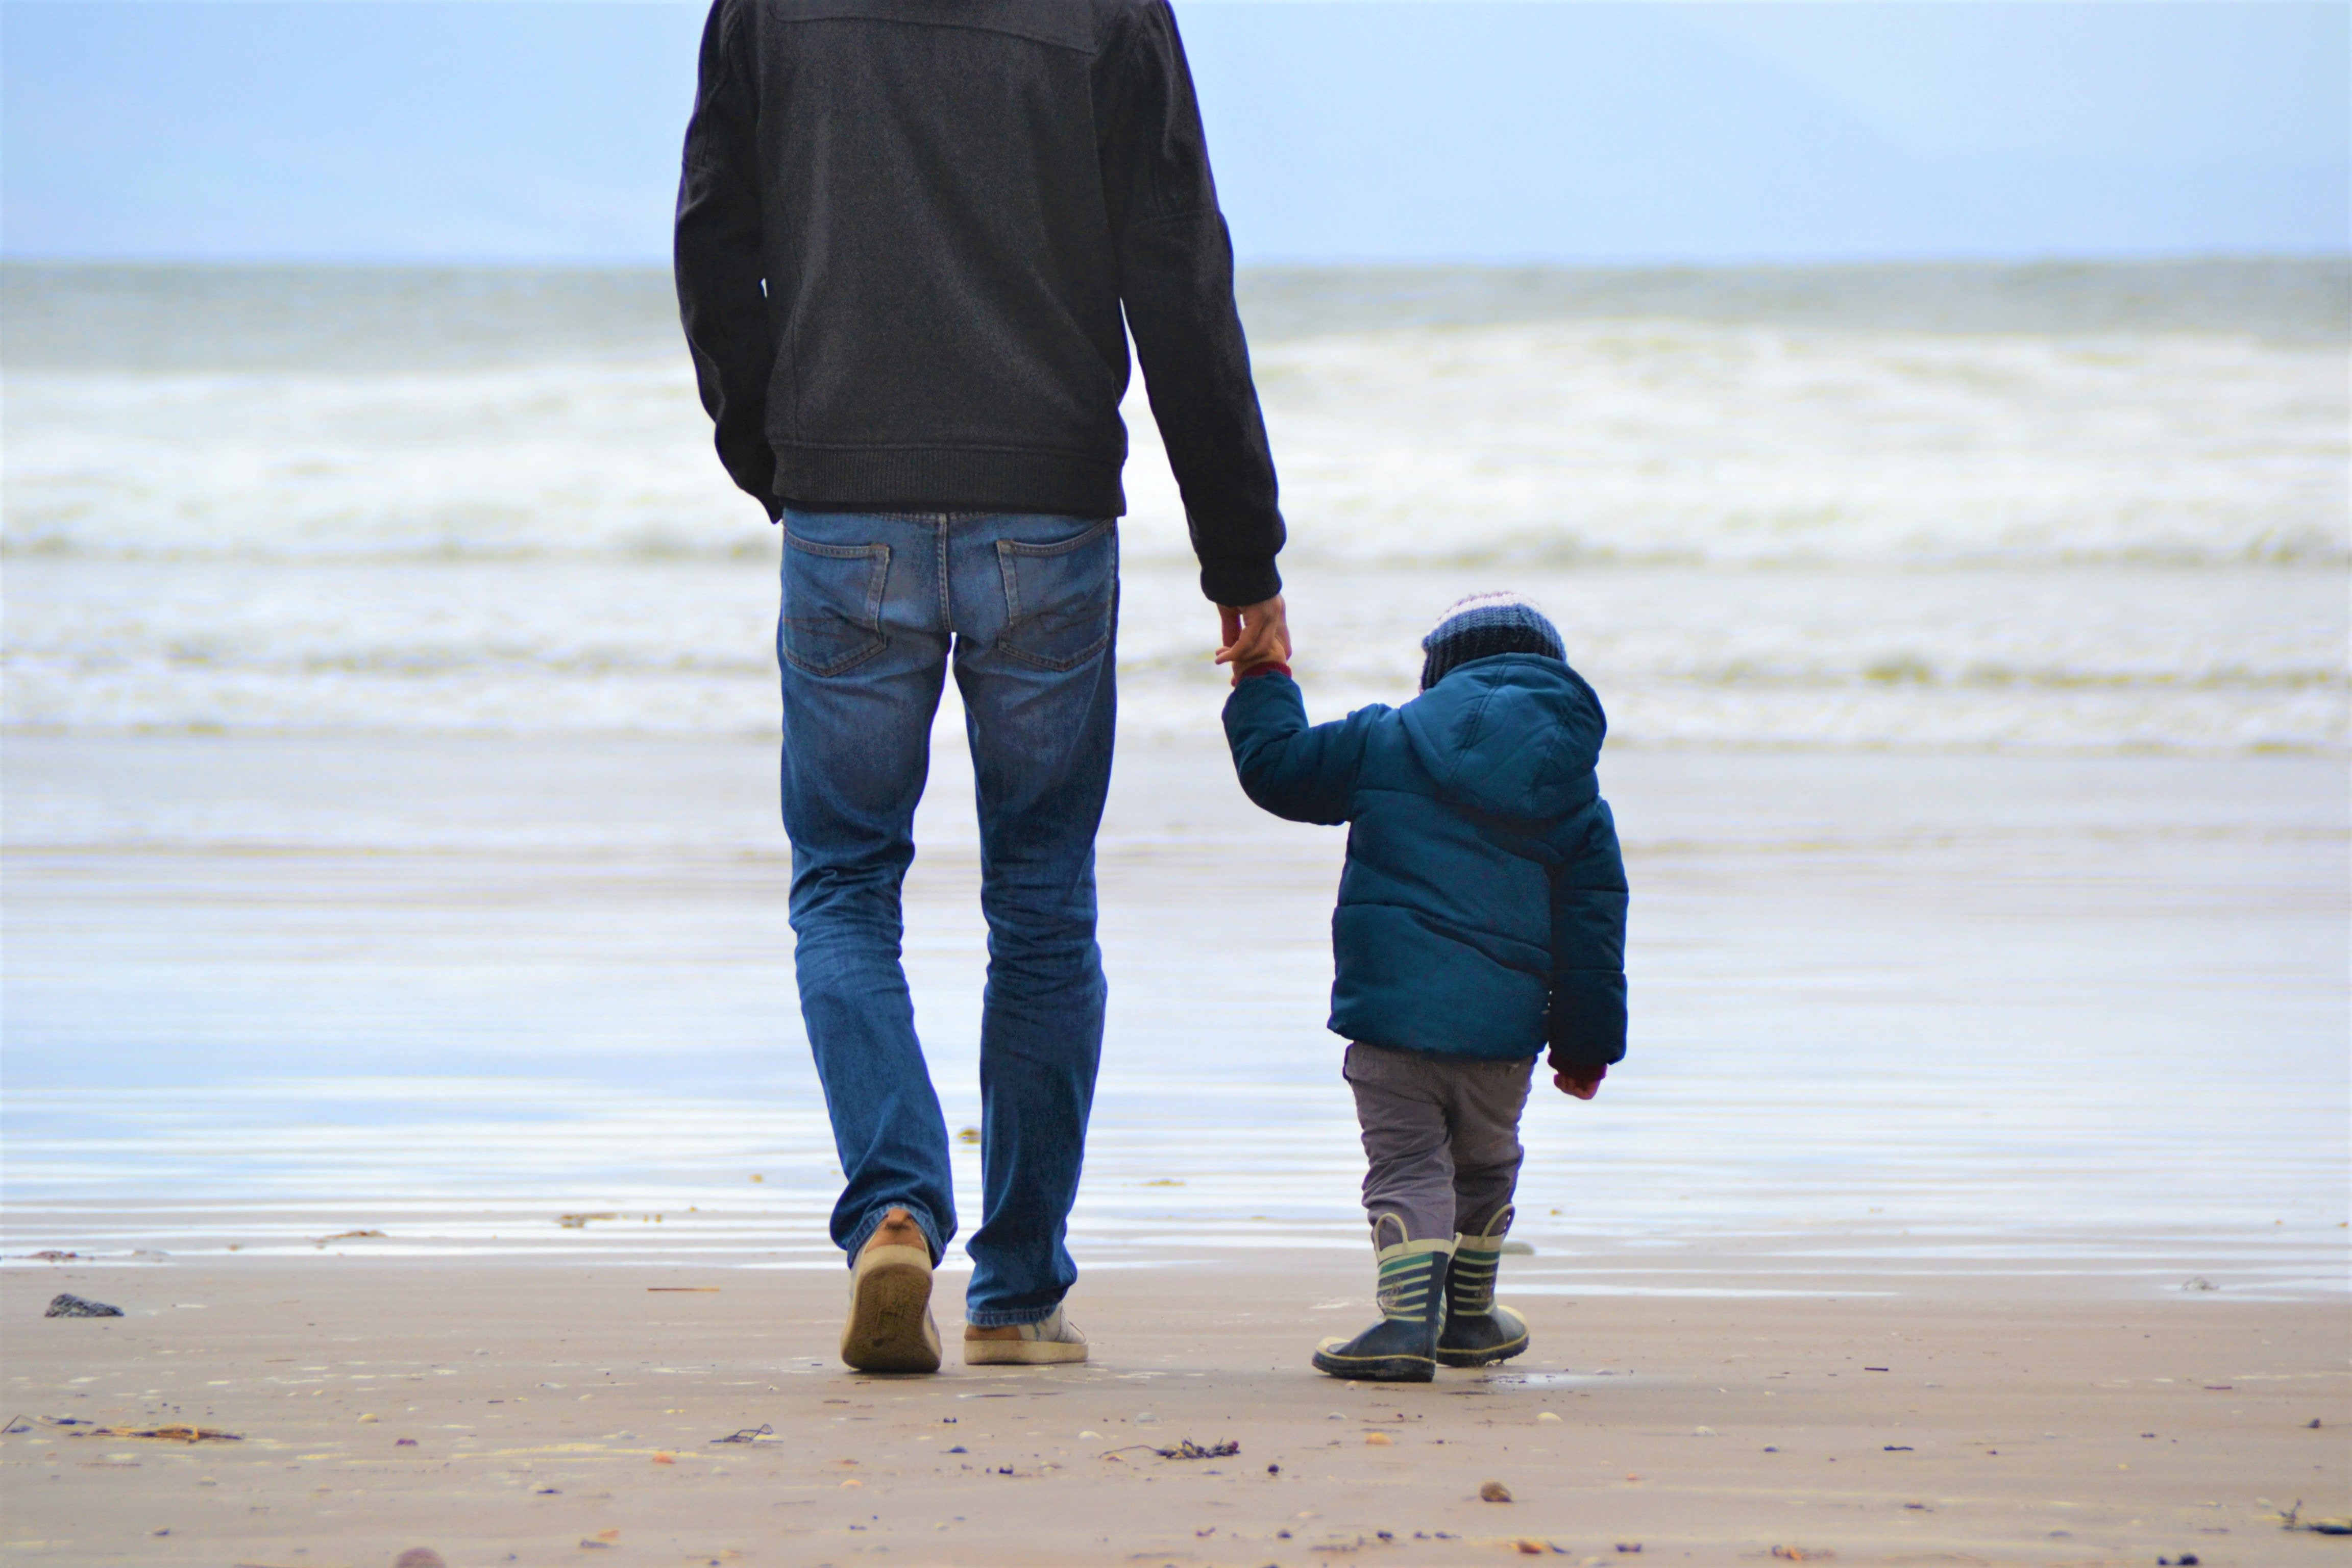 A father and son holding hands | Source: Unsplash